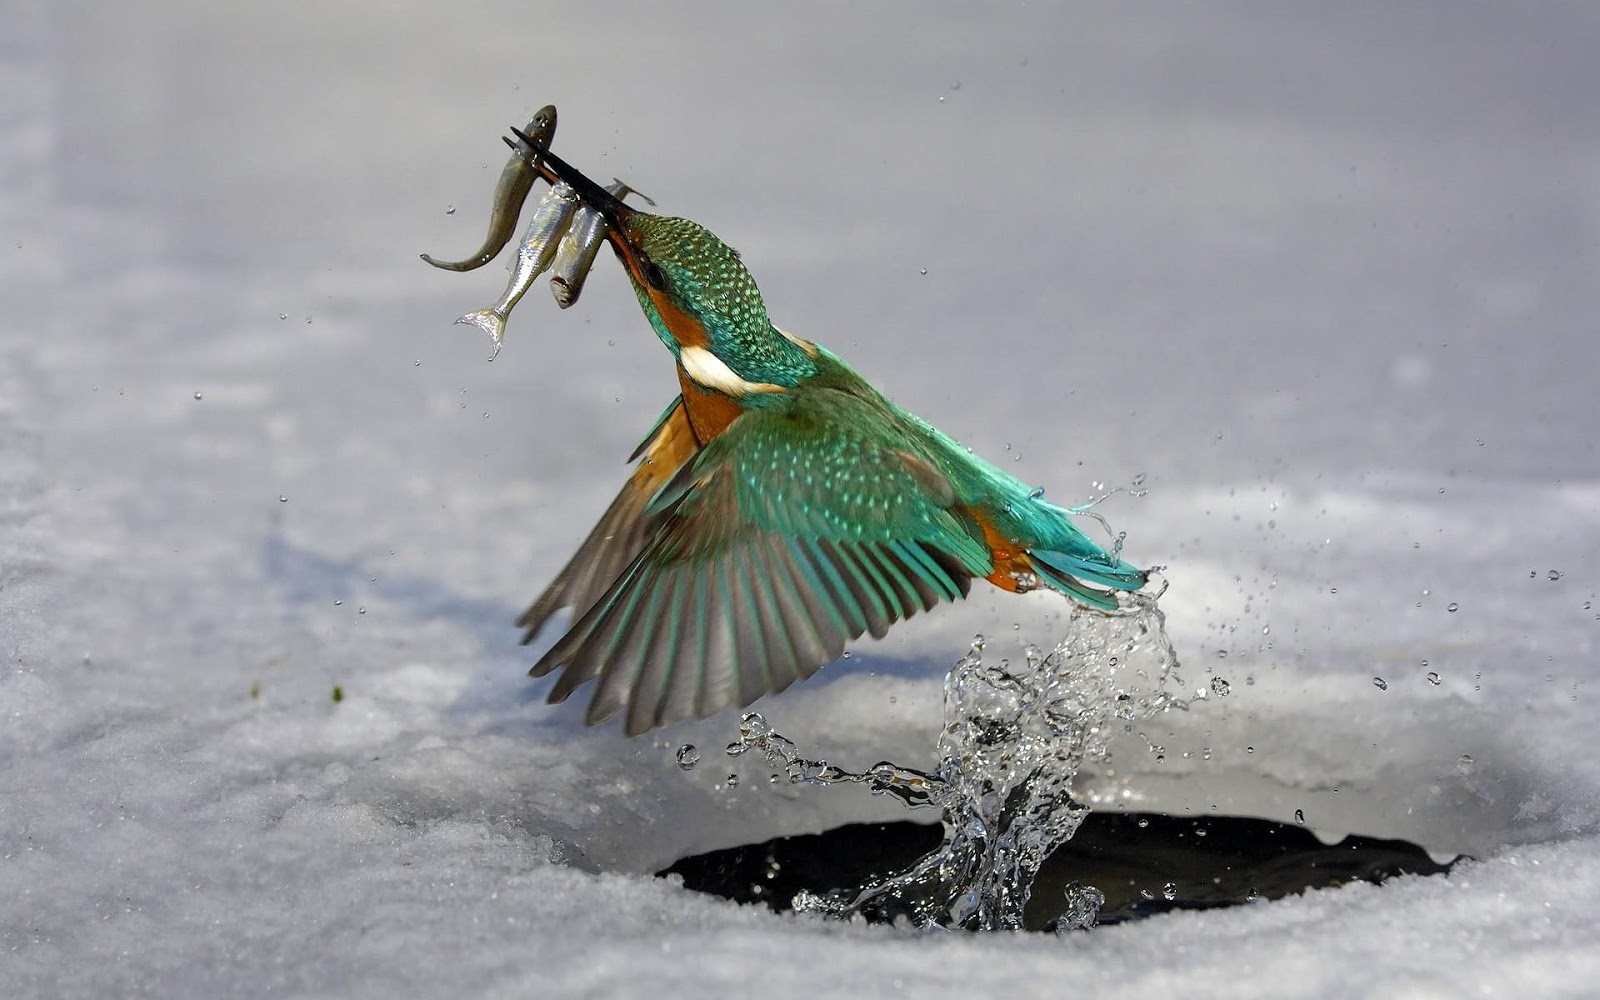 Wallpaper of Kingfisher catching fish | HD Animals Wallpapers 224